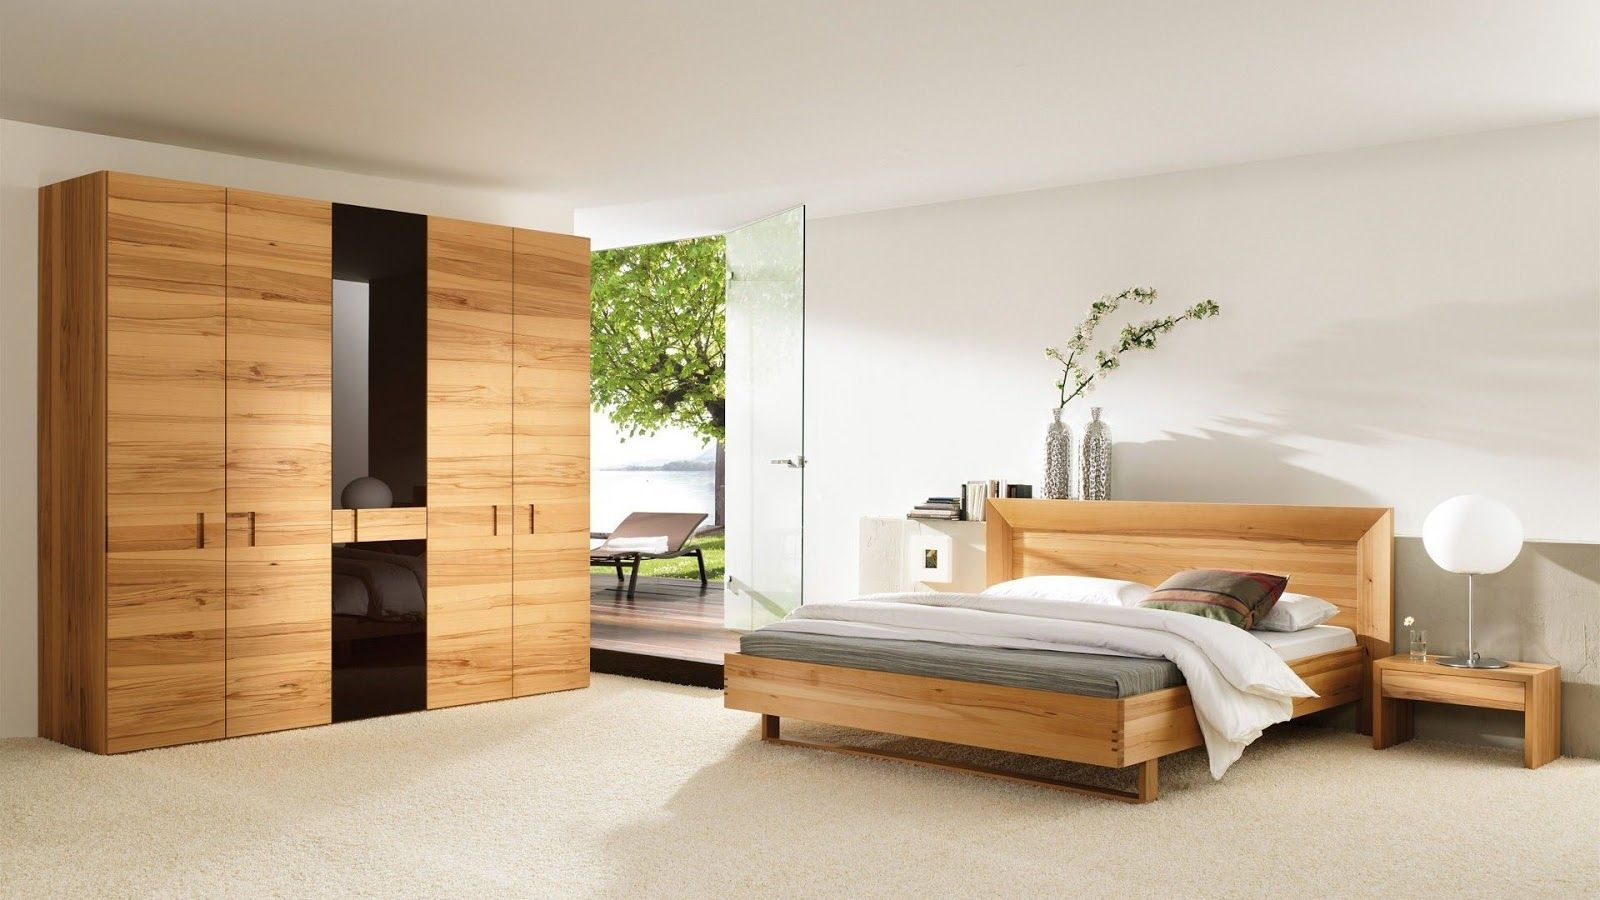 interesting simple bedroom design ideas with nice wardrobe closet    DecoraThink. interesting simple bedroom design ideas with nice wardrobe closet